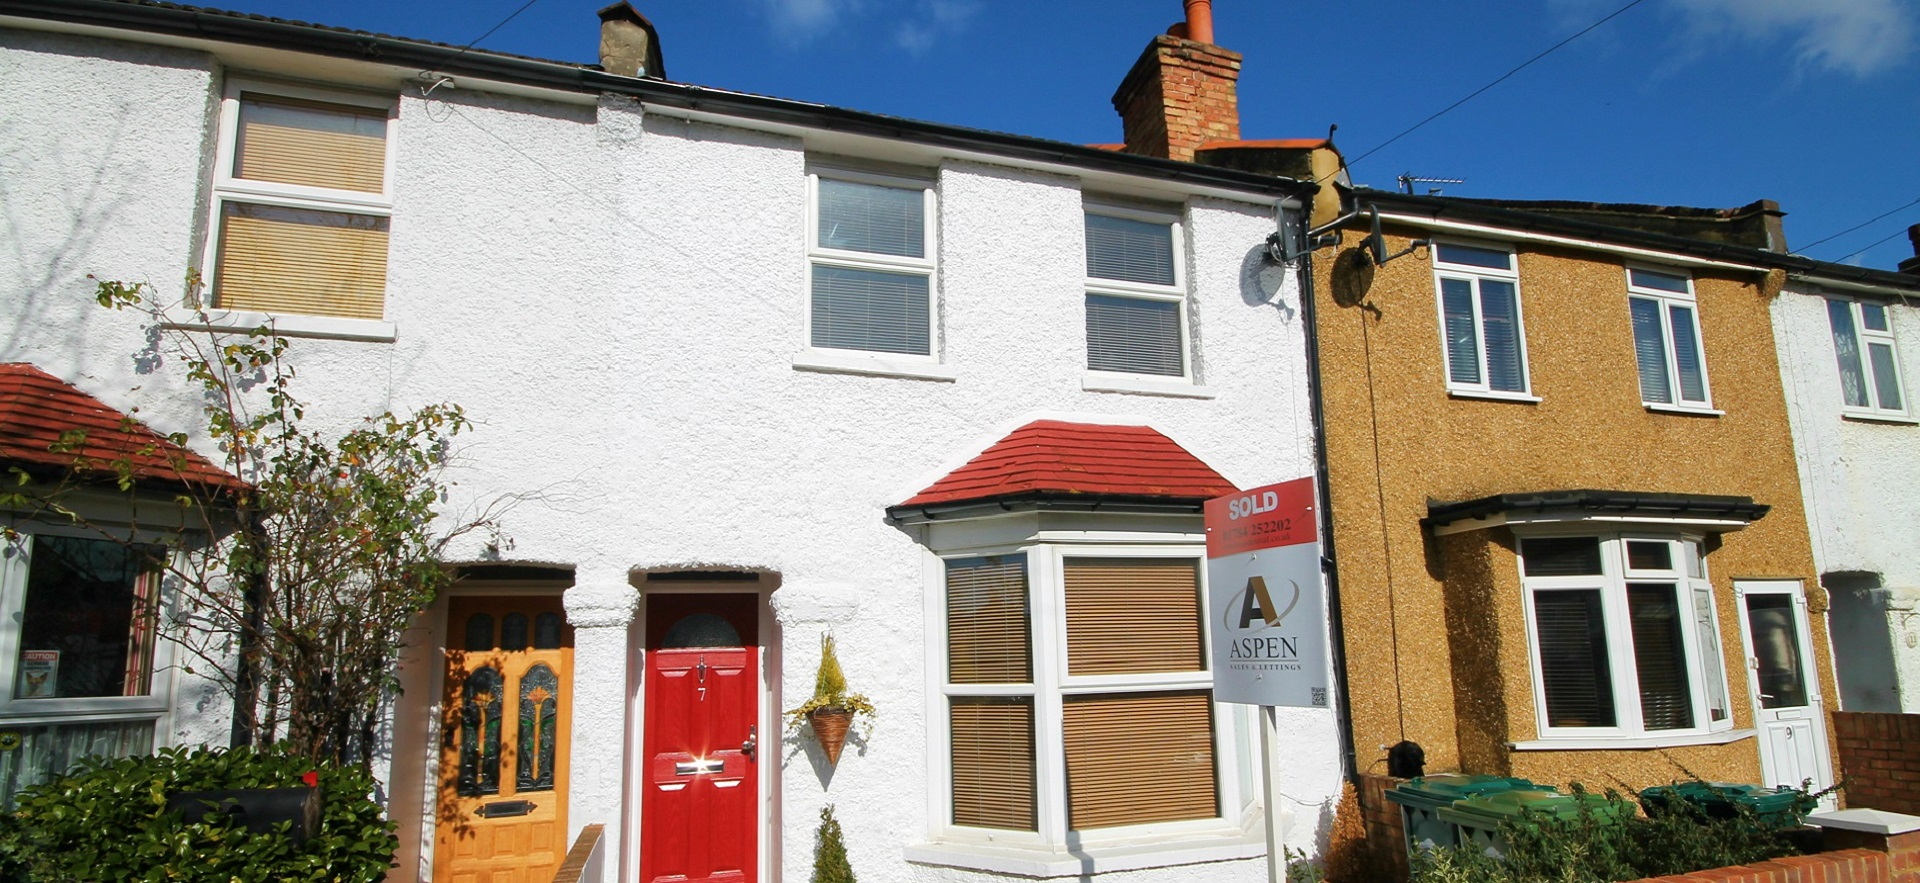 Sales & Lettings Support Role available at Aspen Residential